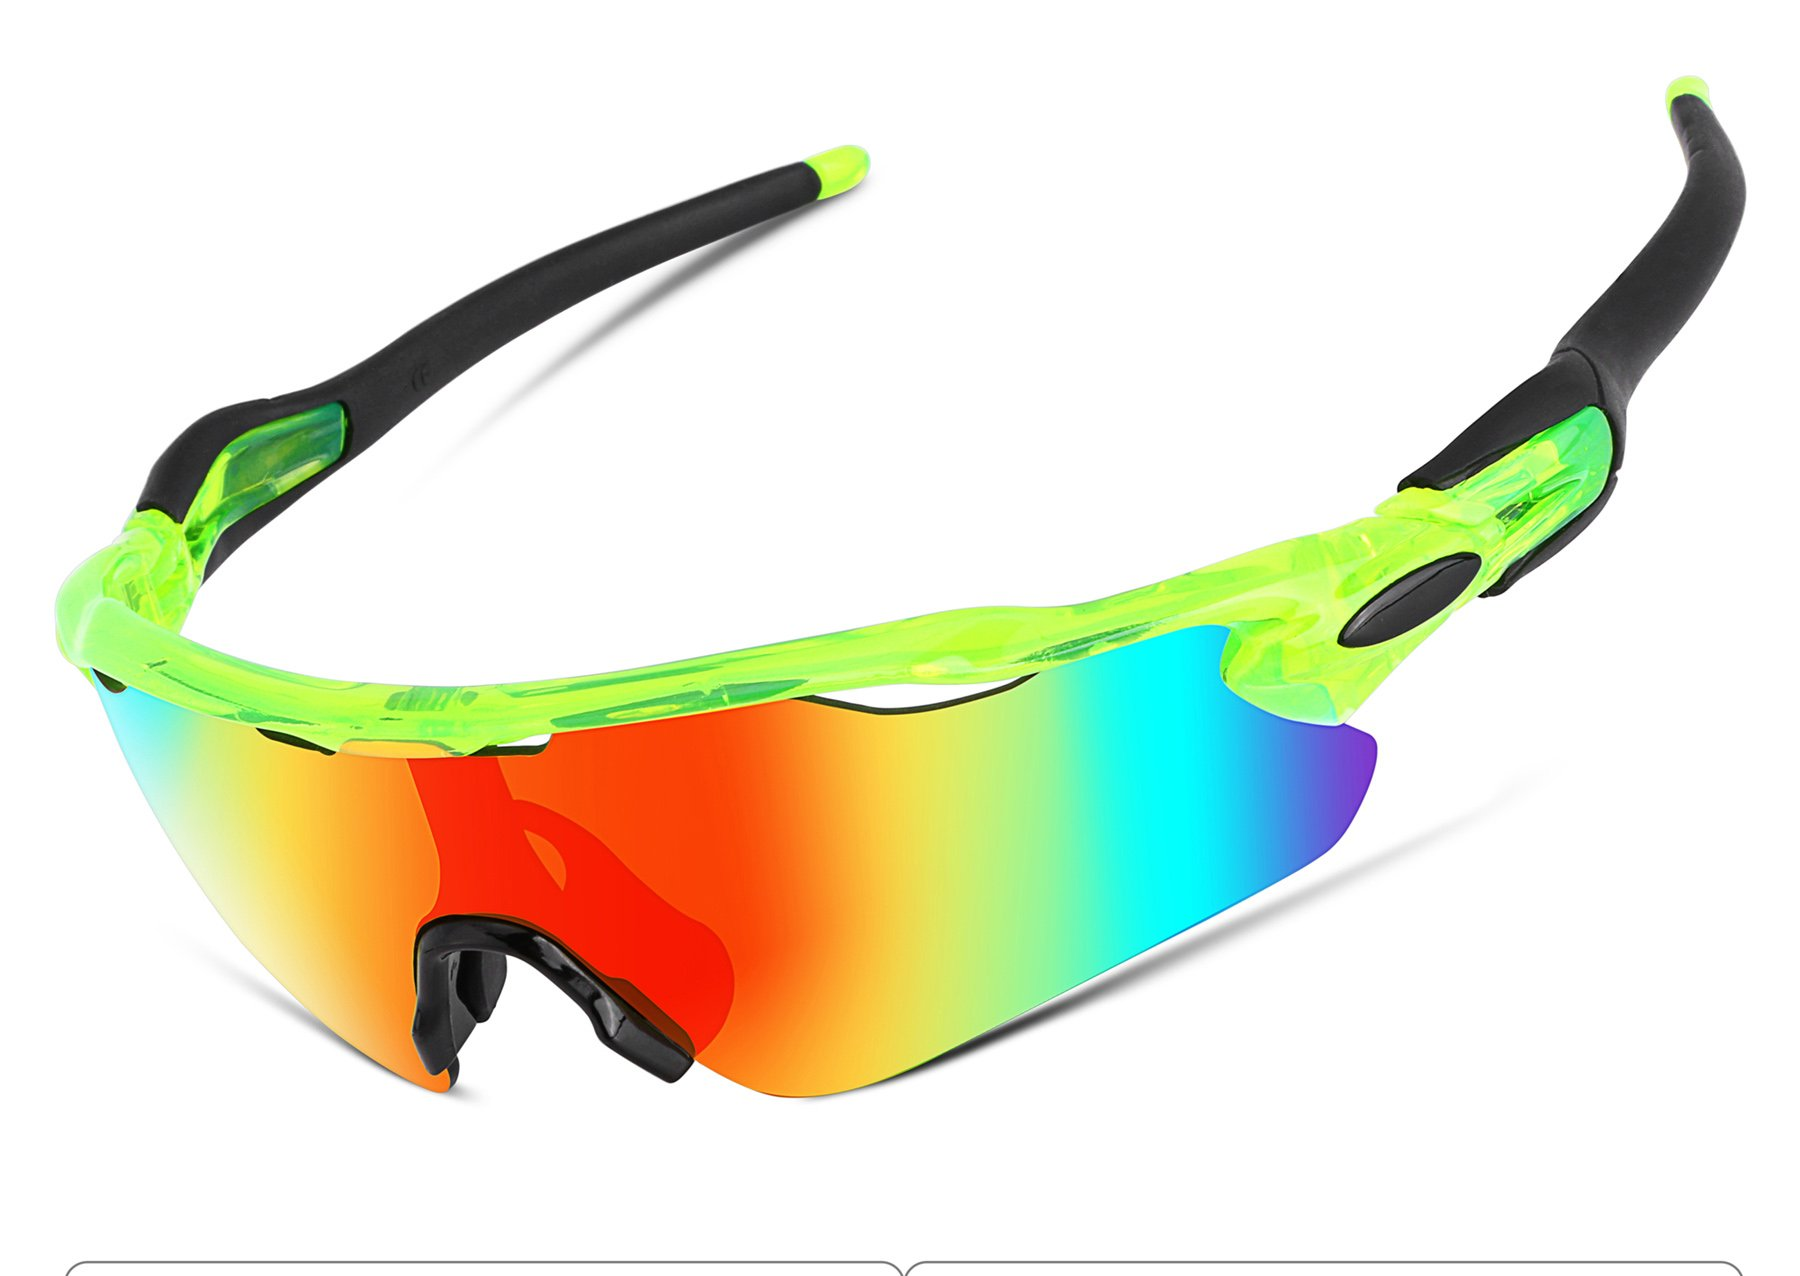 FEISEDY Polarized Sports Sunglasses Changeable Lenses TR90 Frame Cycling B2280 (3, 52)